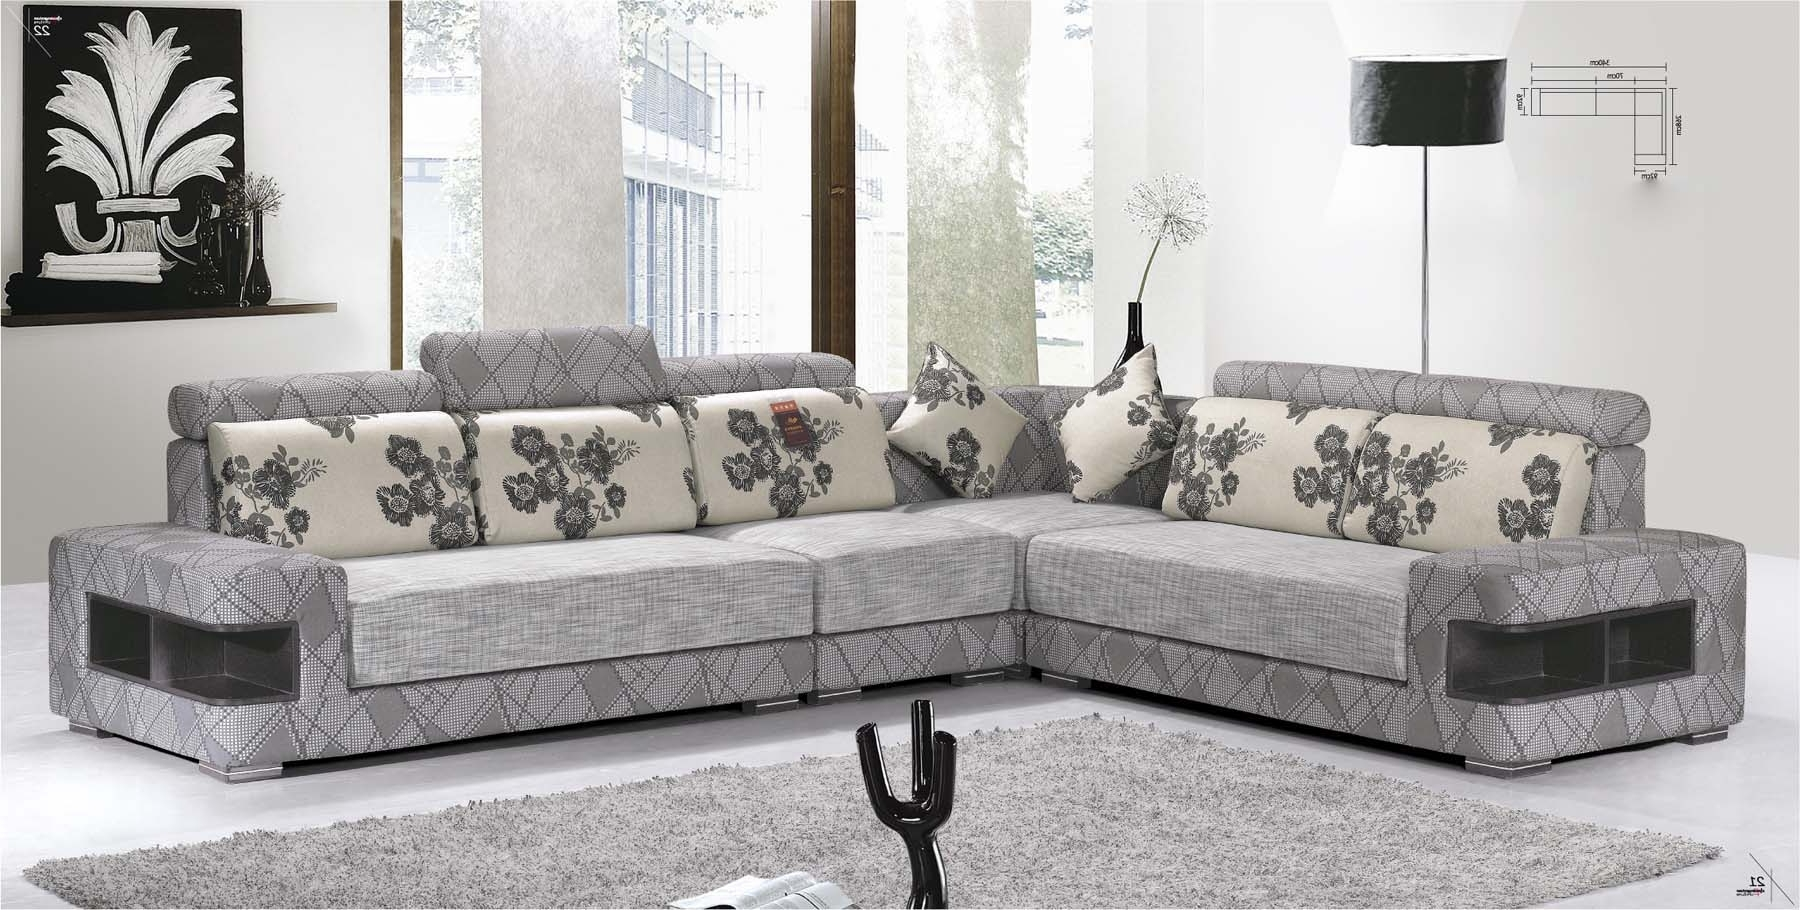 Inspiration Home Design And Decoration Intended For Contemporary Fabric Sofas (Gallery 12 of 20)